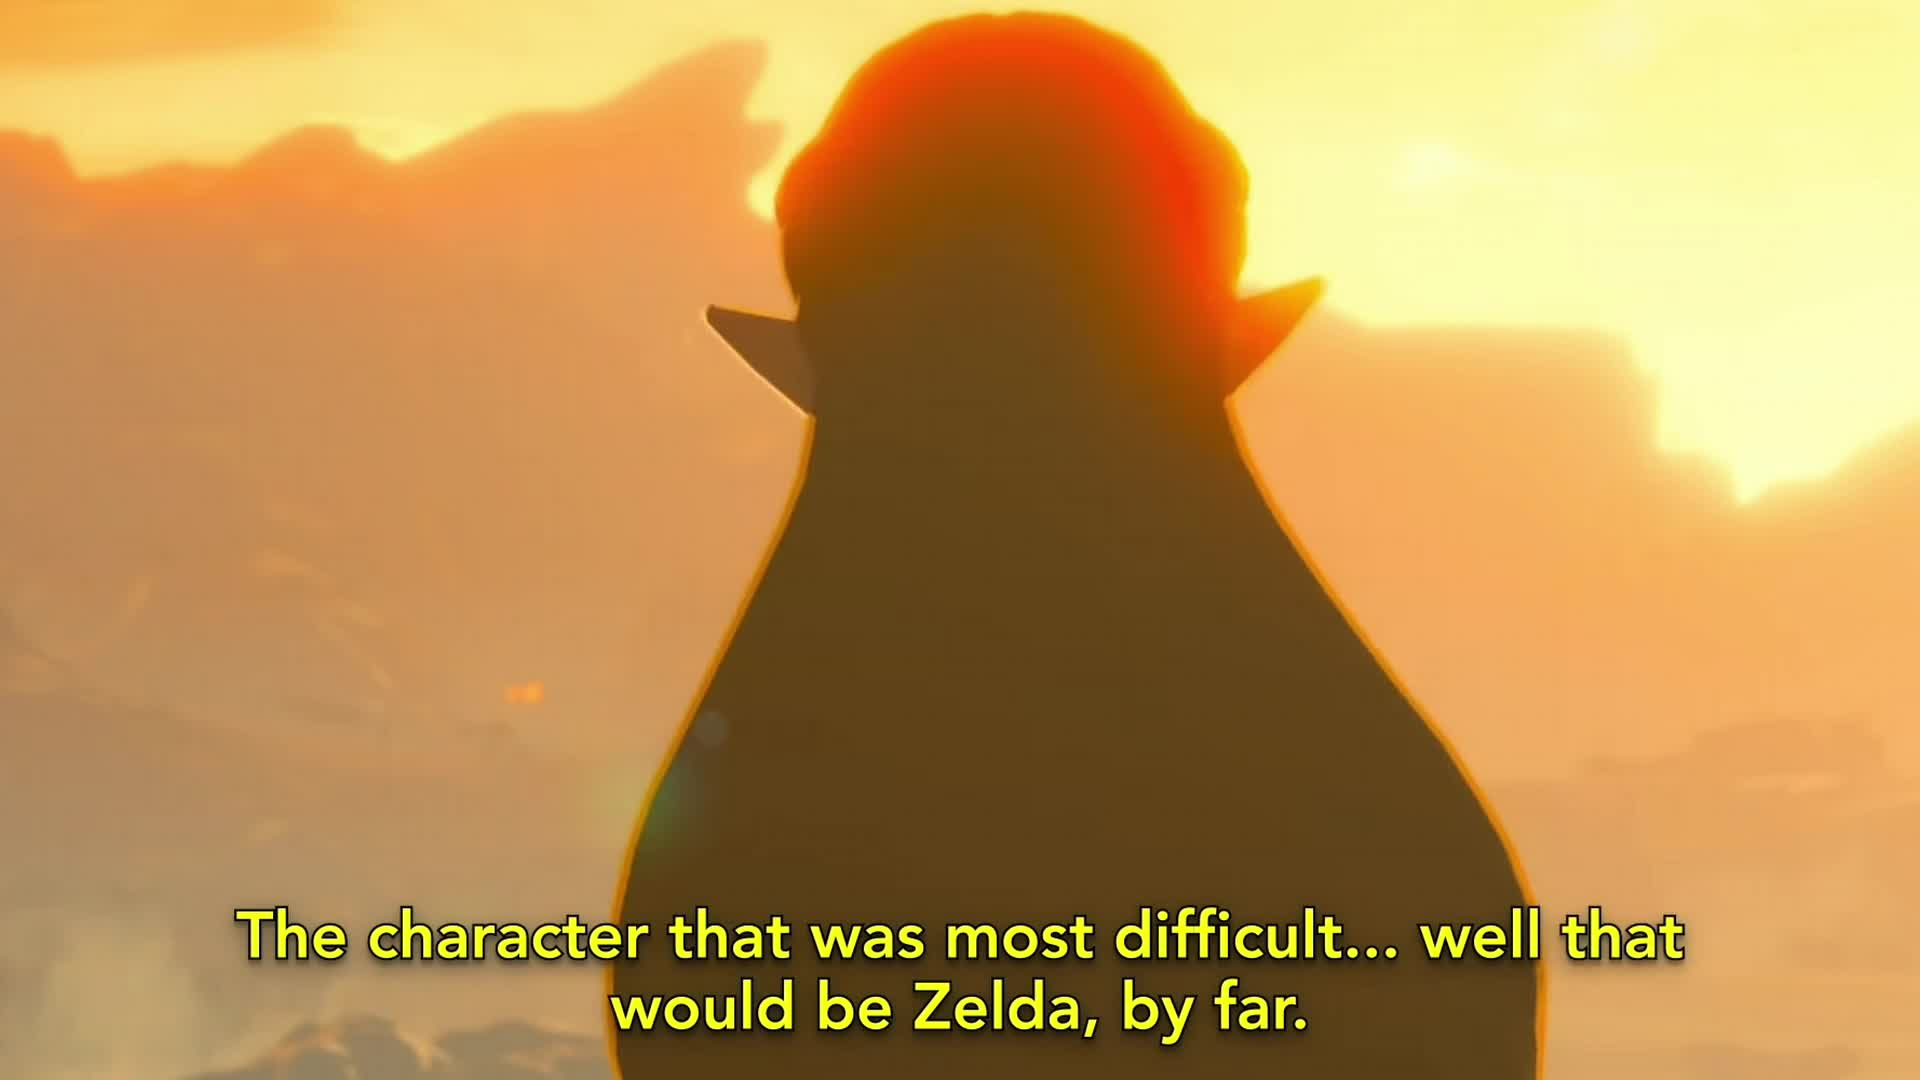 Zelda playable GIFs